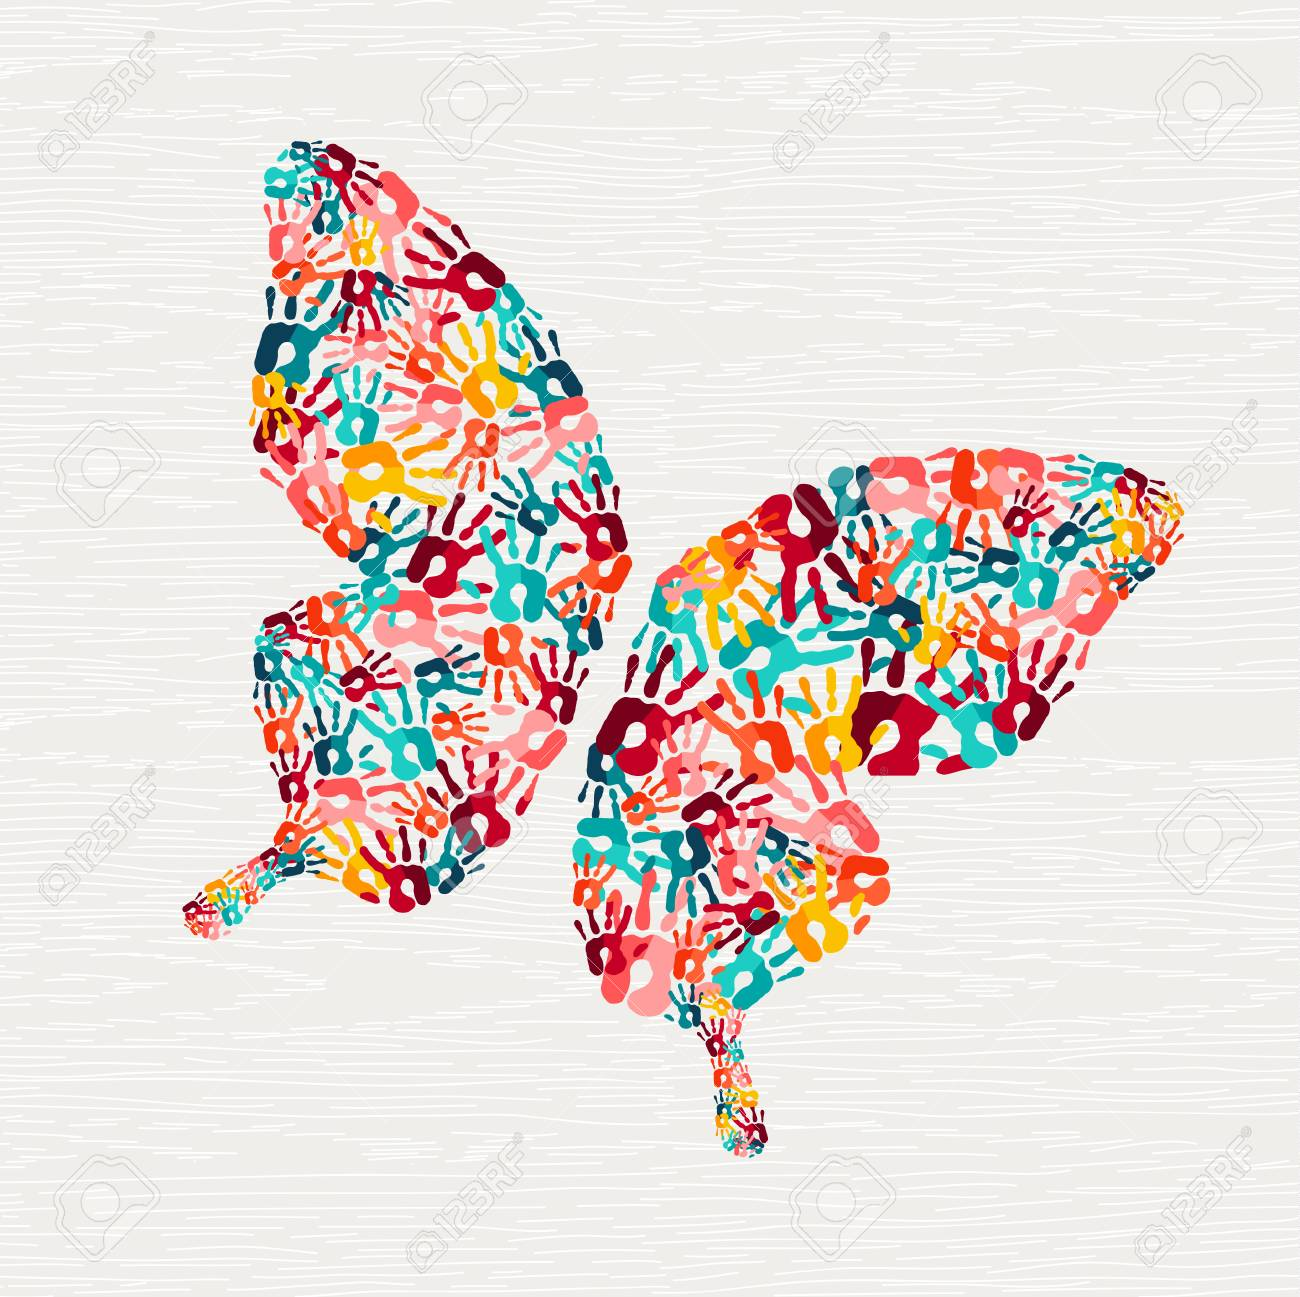 Human hand print butterfly shape concept. Colorful paint handprint background for diverse community or social project. vector. - 103830824